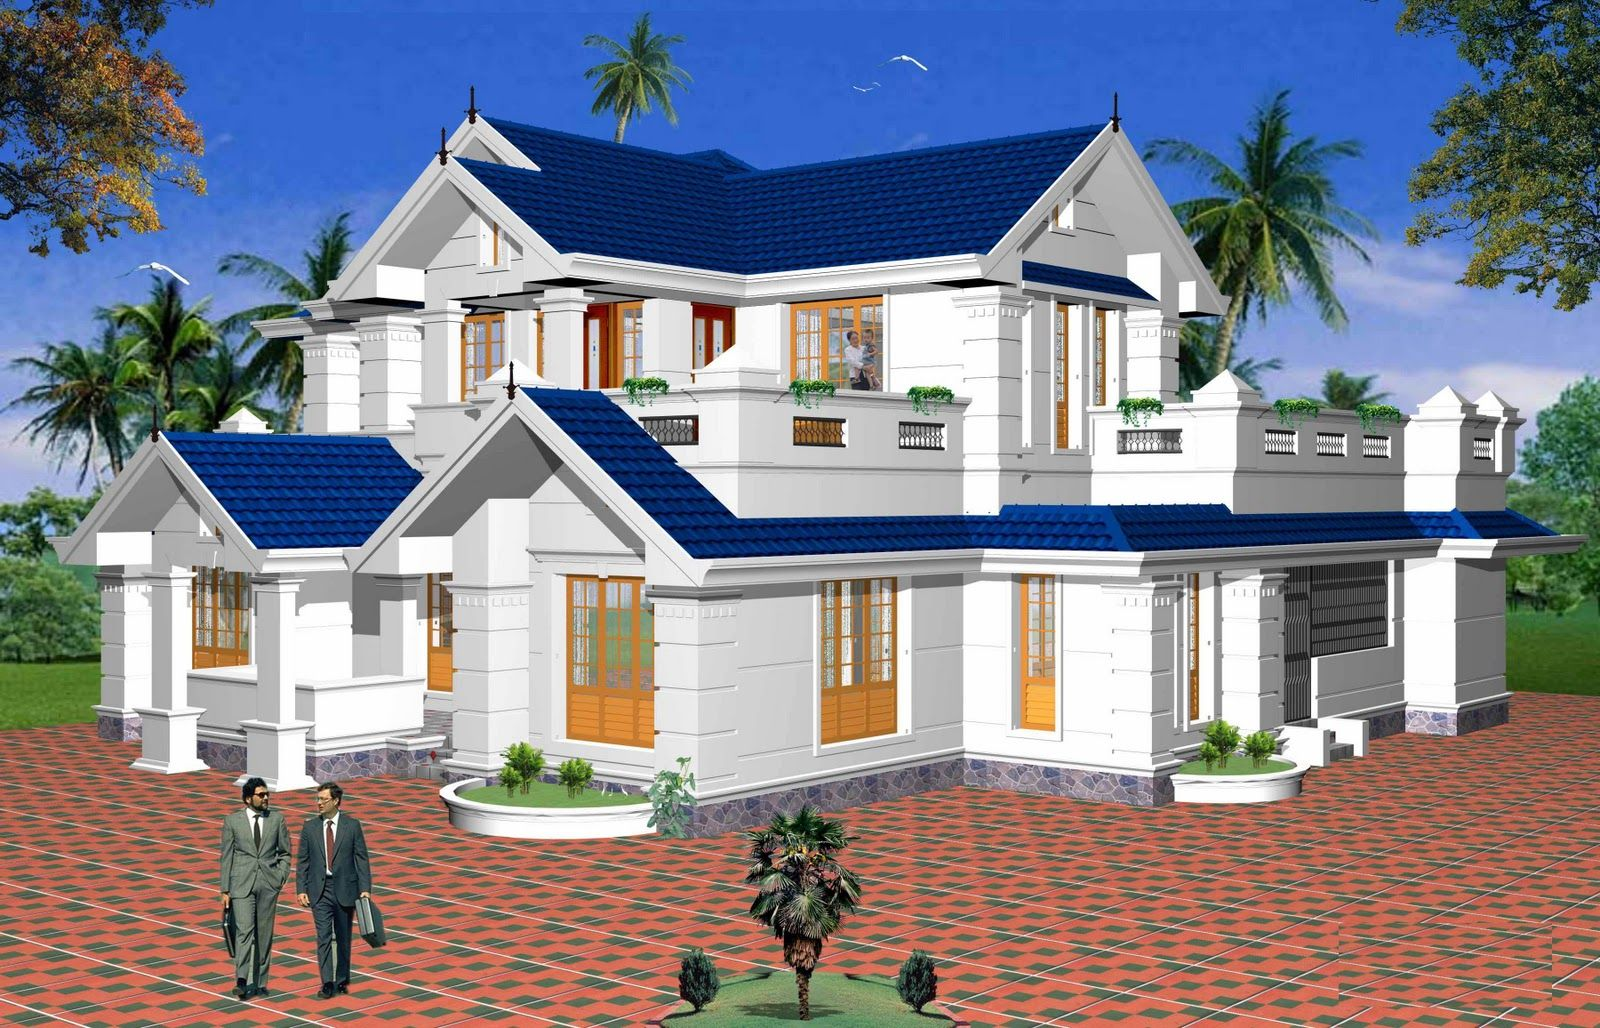 exterior designs of houses pack 14 realfiedscom pinterest design of house villa design and construction companies - Architectural Design Homes